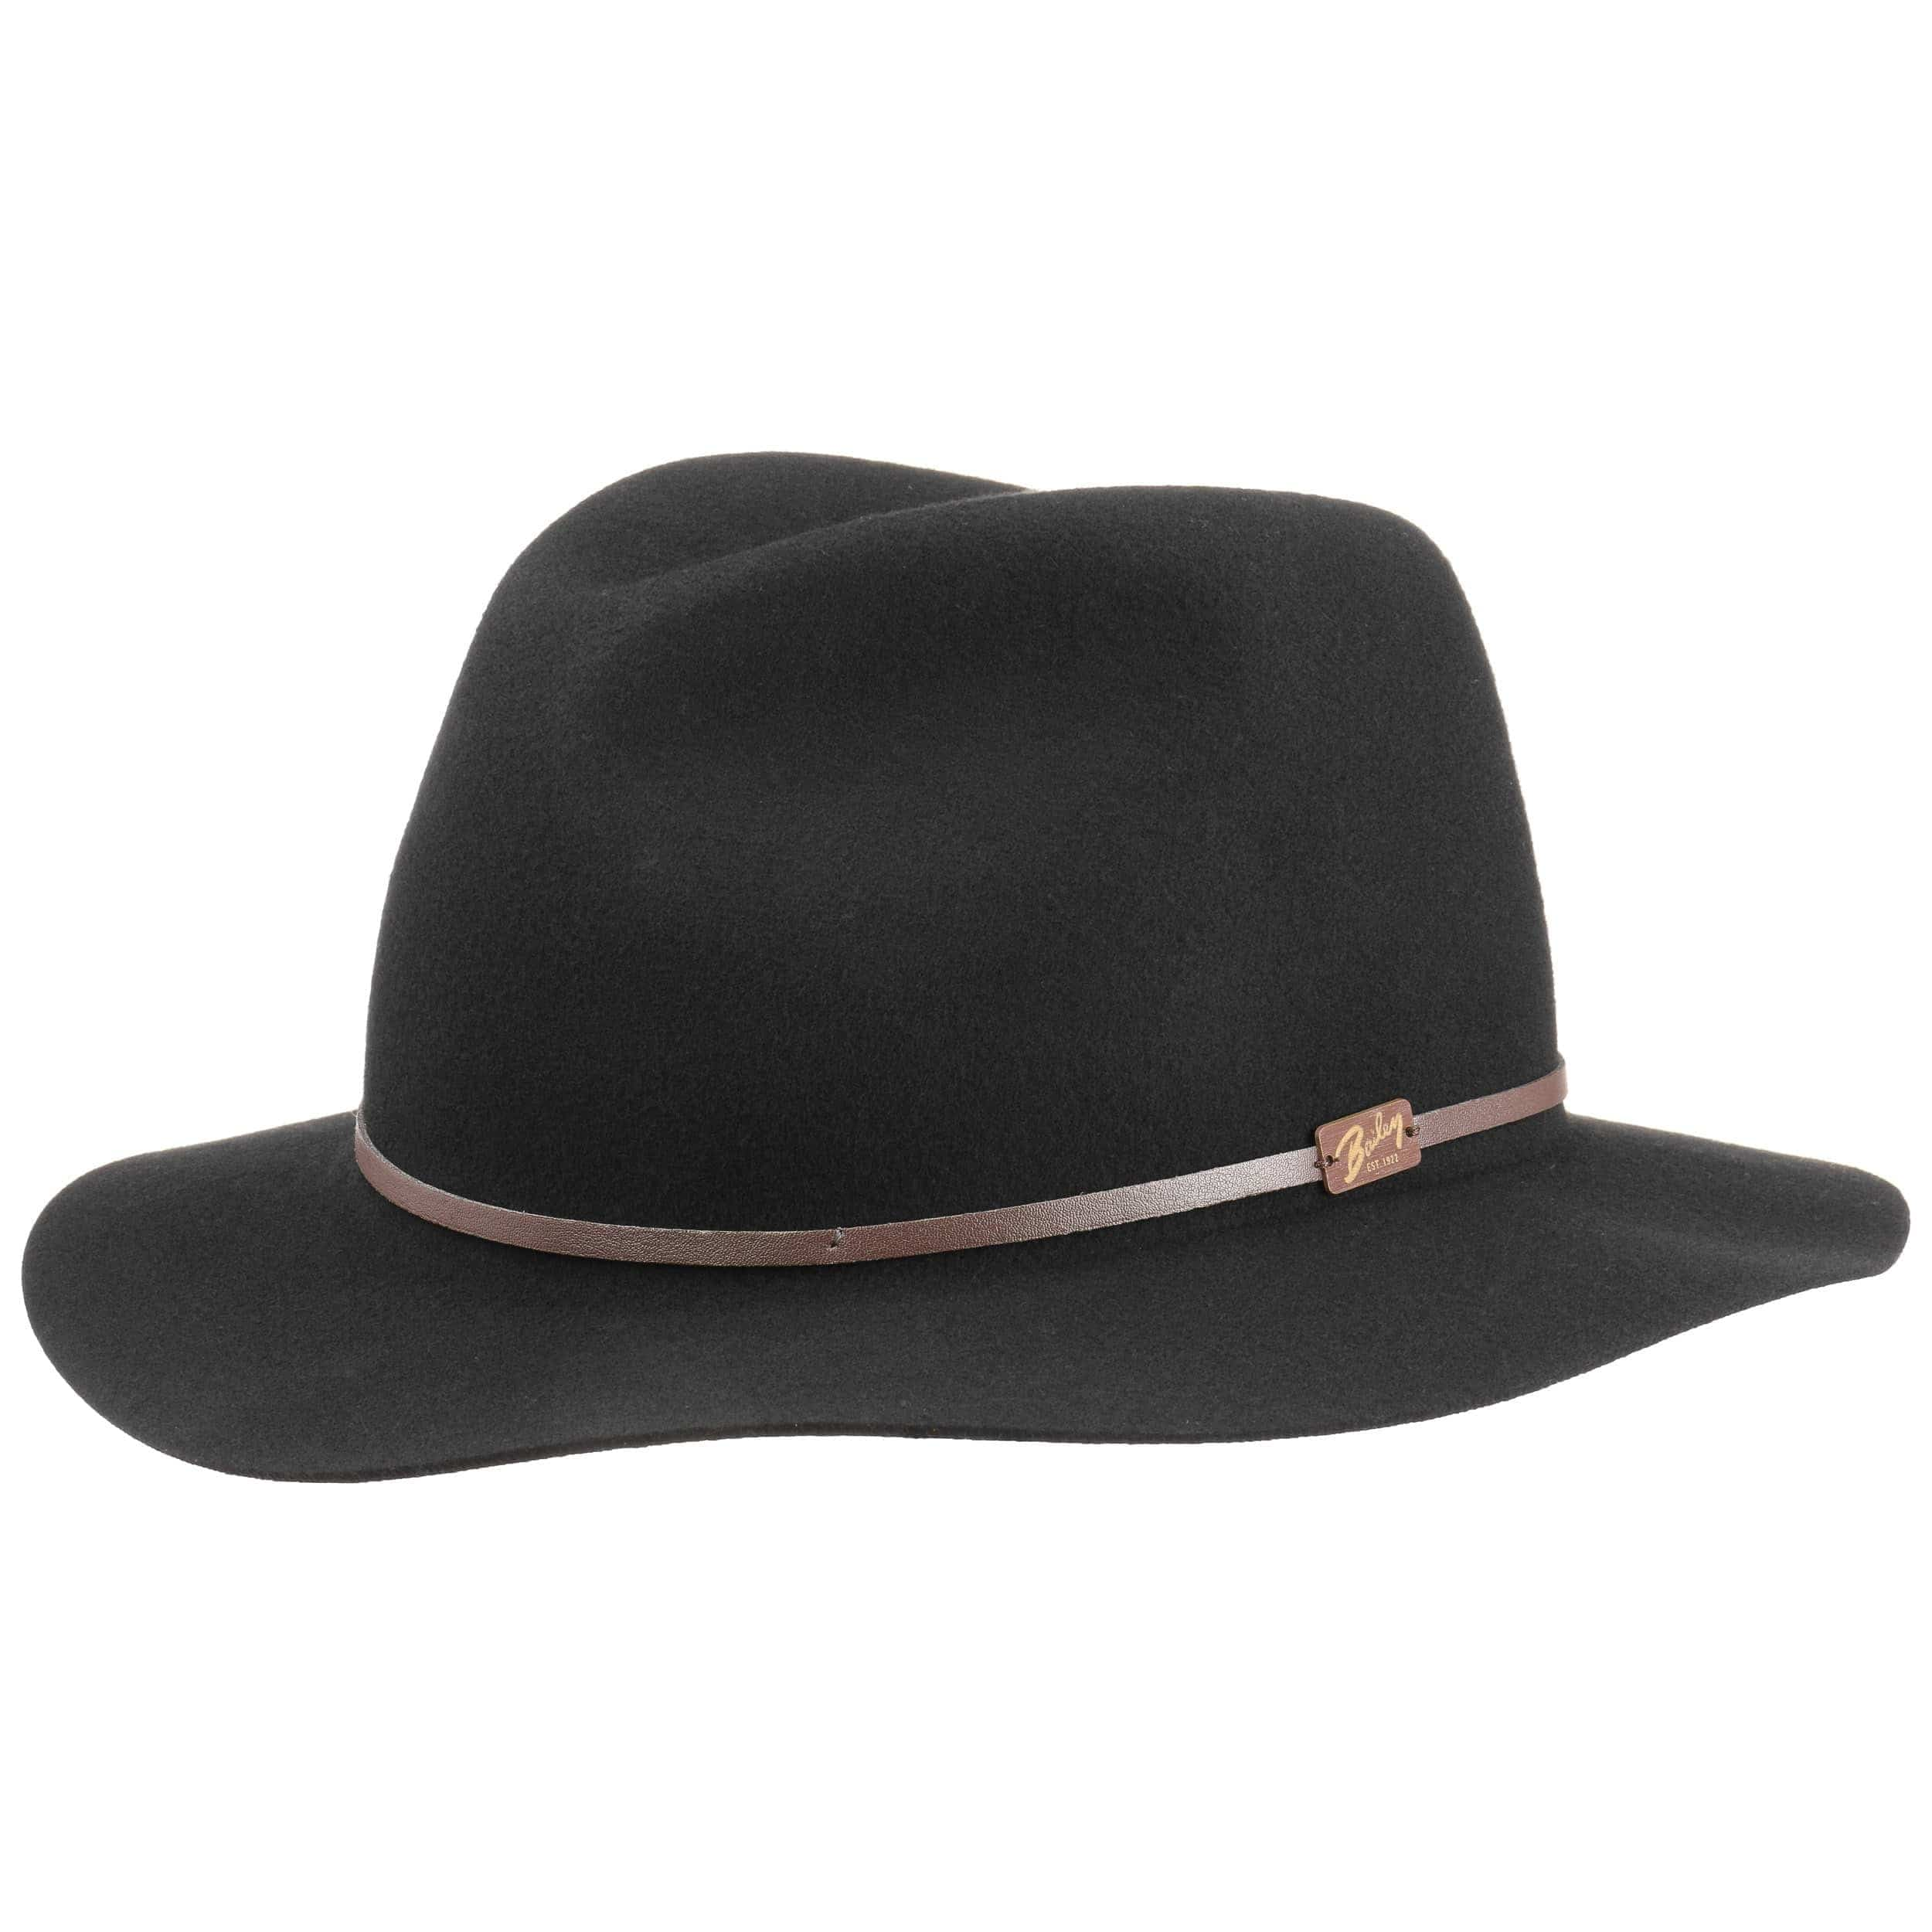 Jackman Fedora Hat by Bailey of Hollywood - 88,95